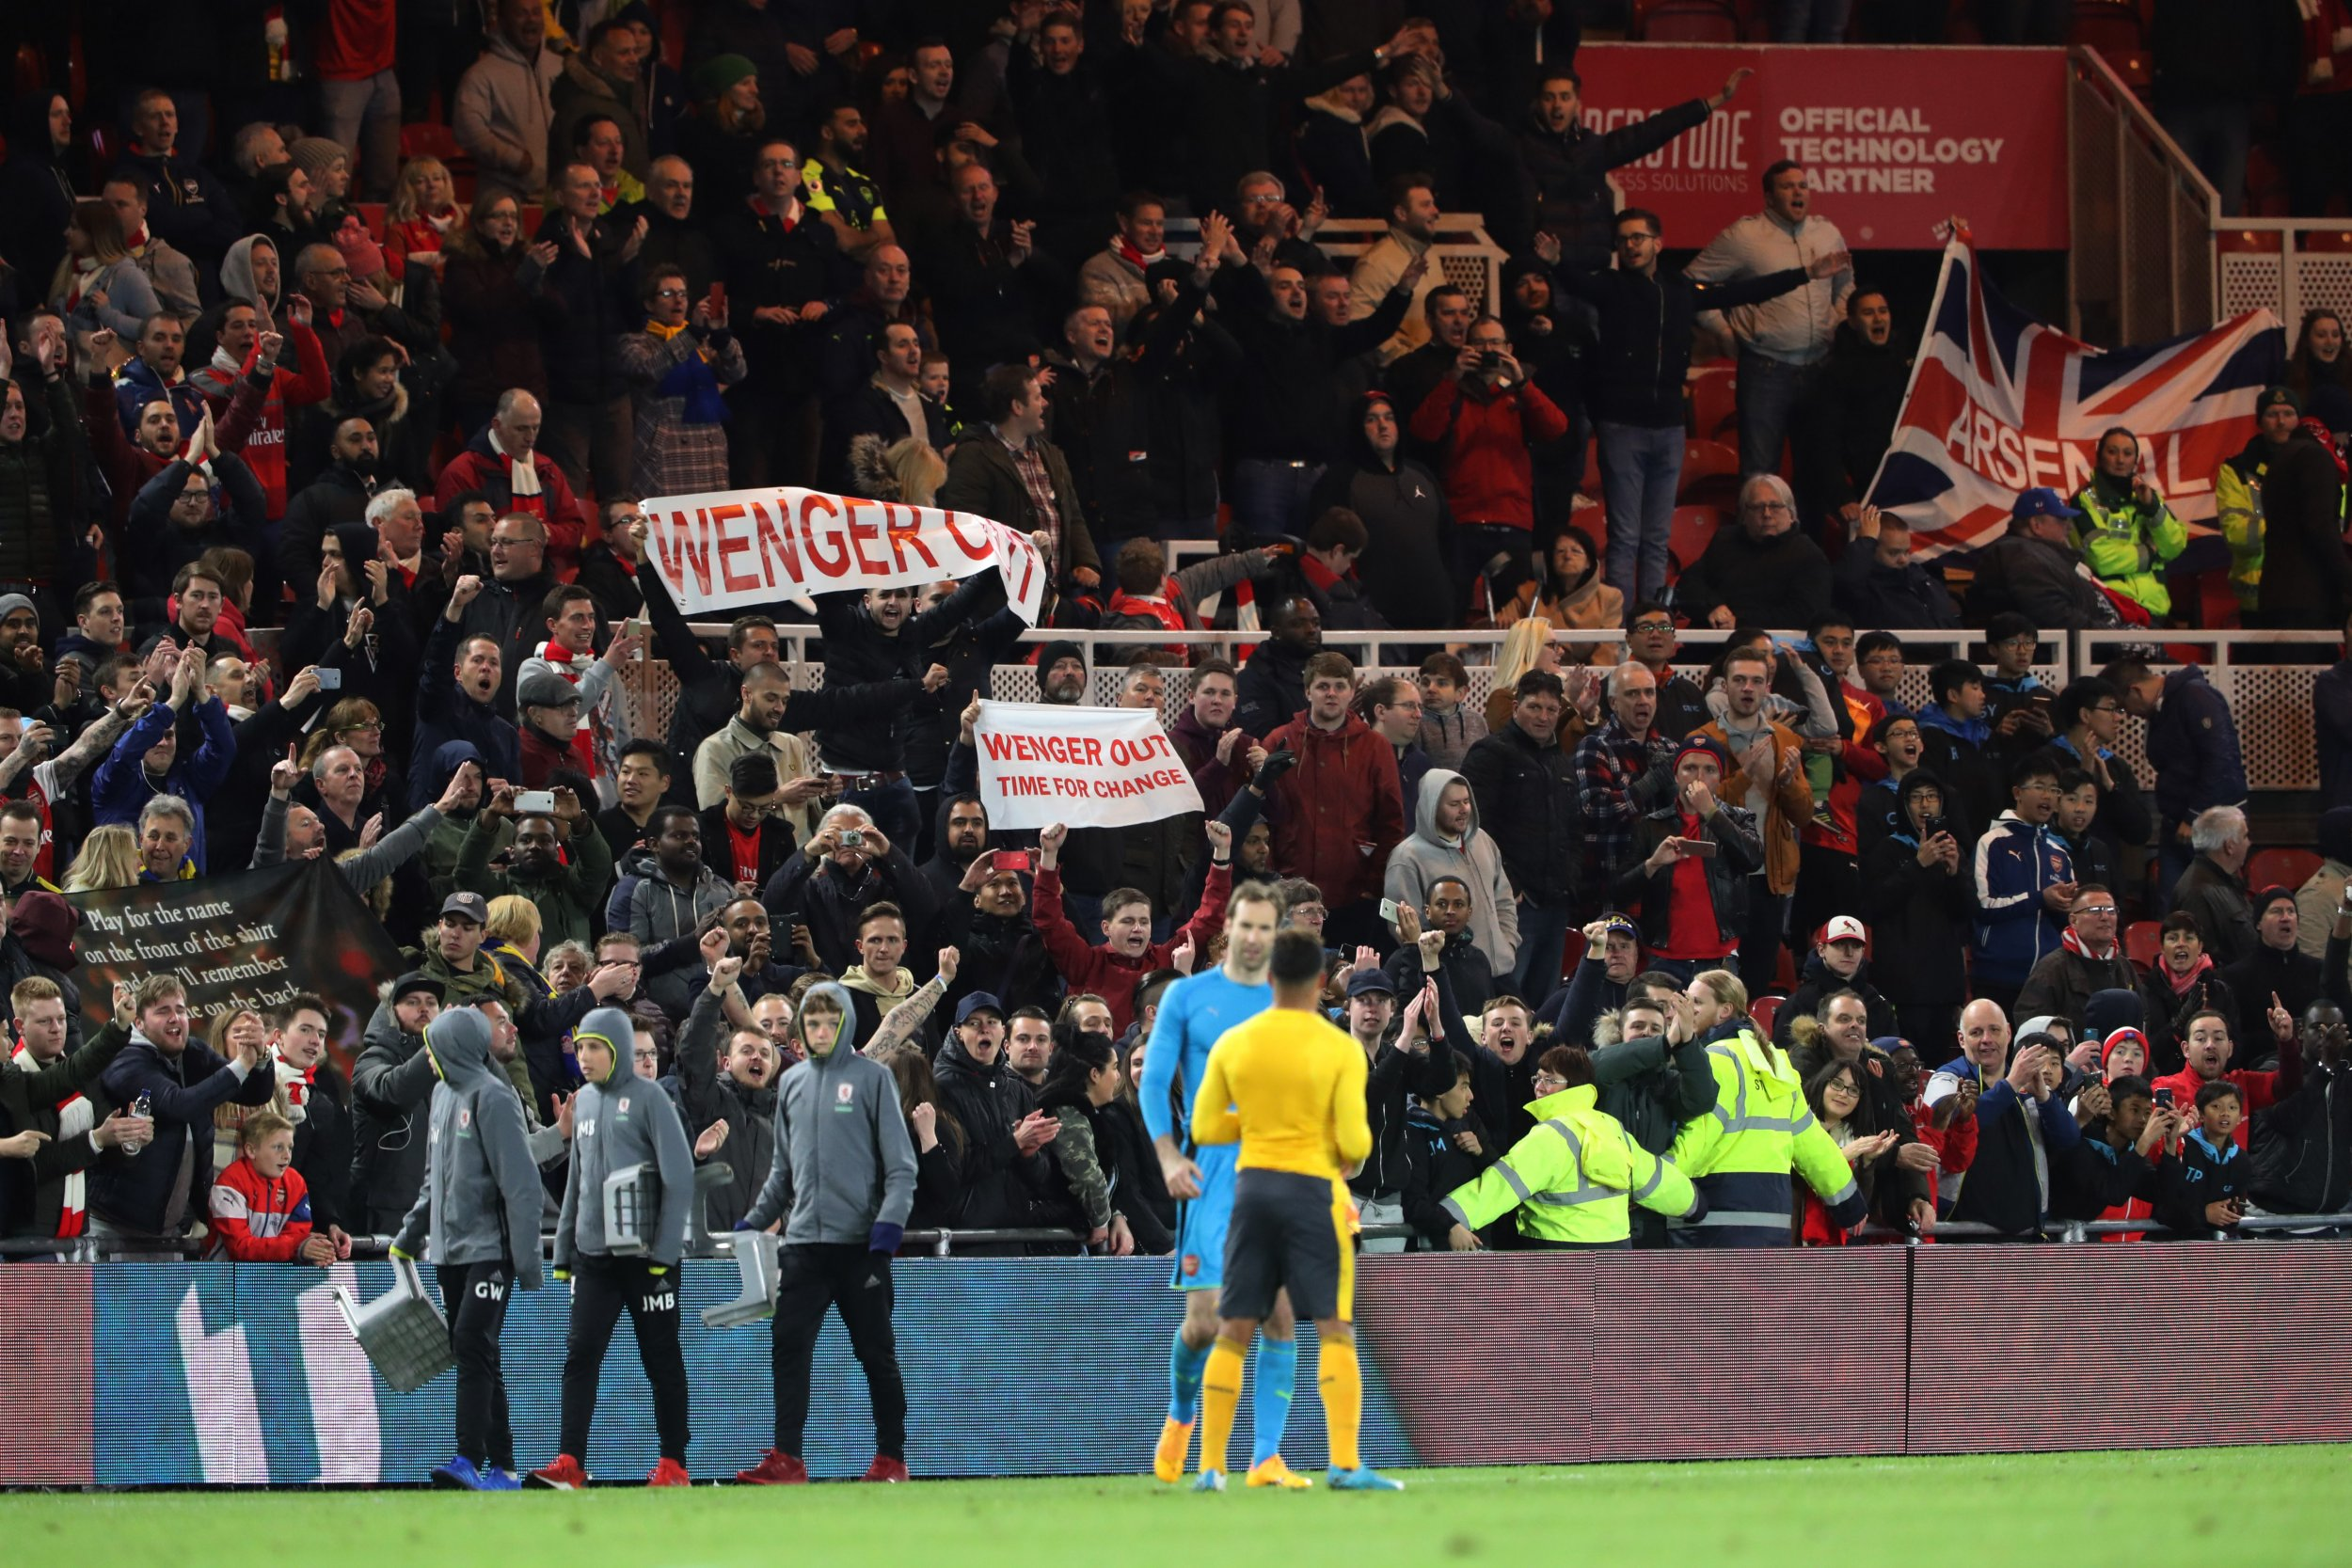 Arsenal fans hold up banners protesting against manager Arsene Wenger